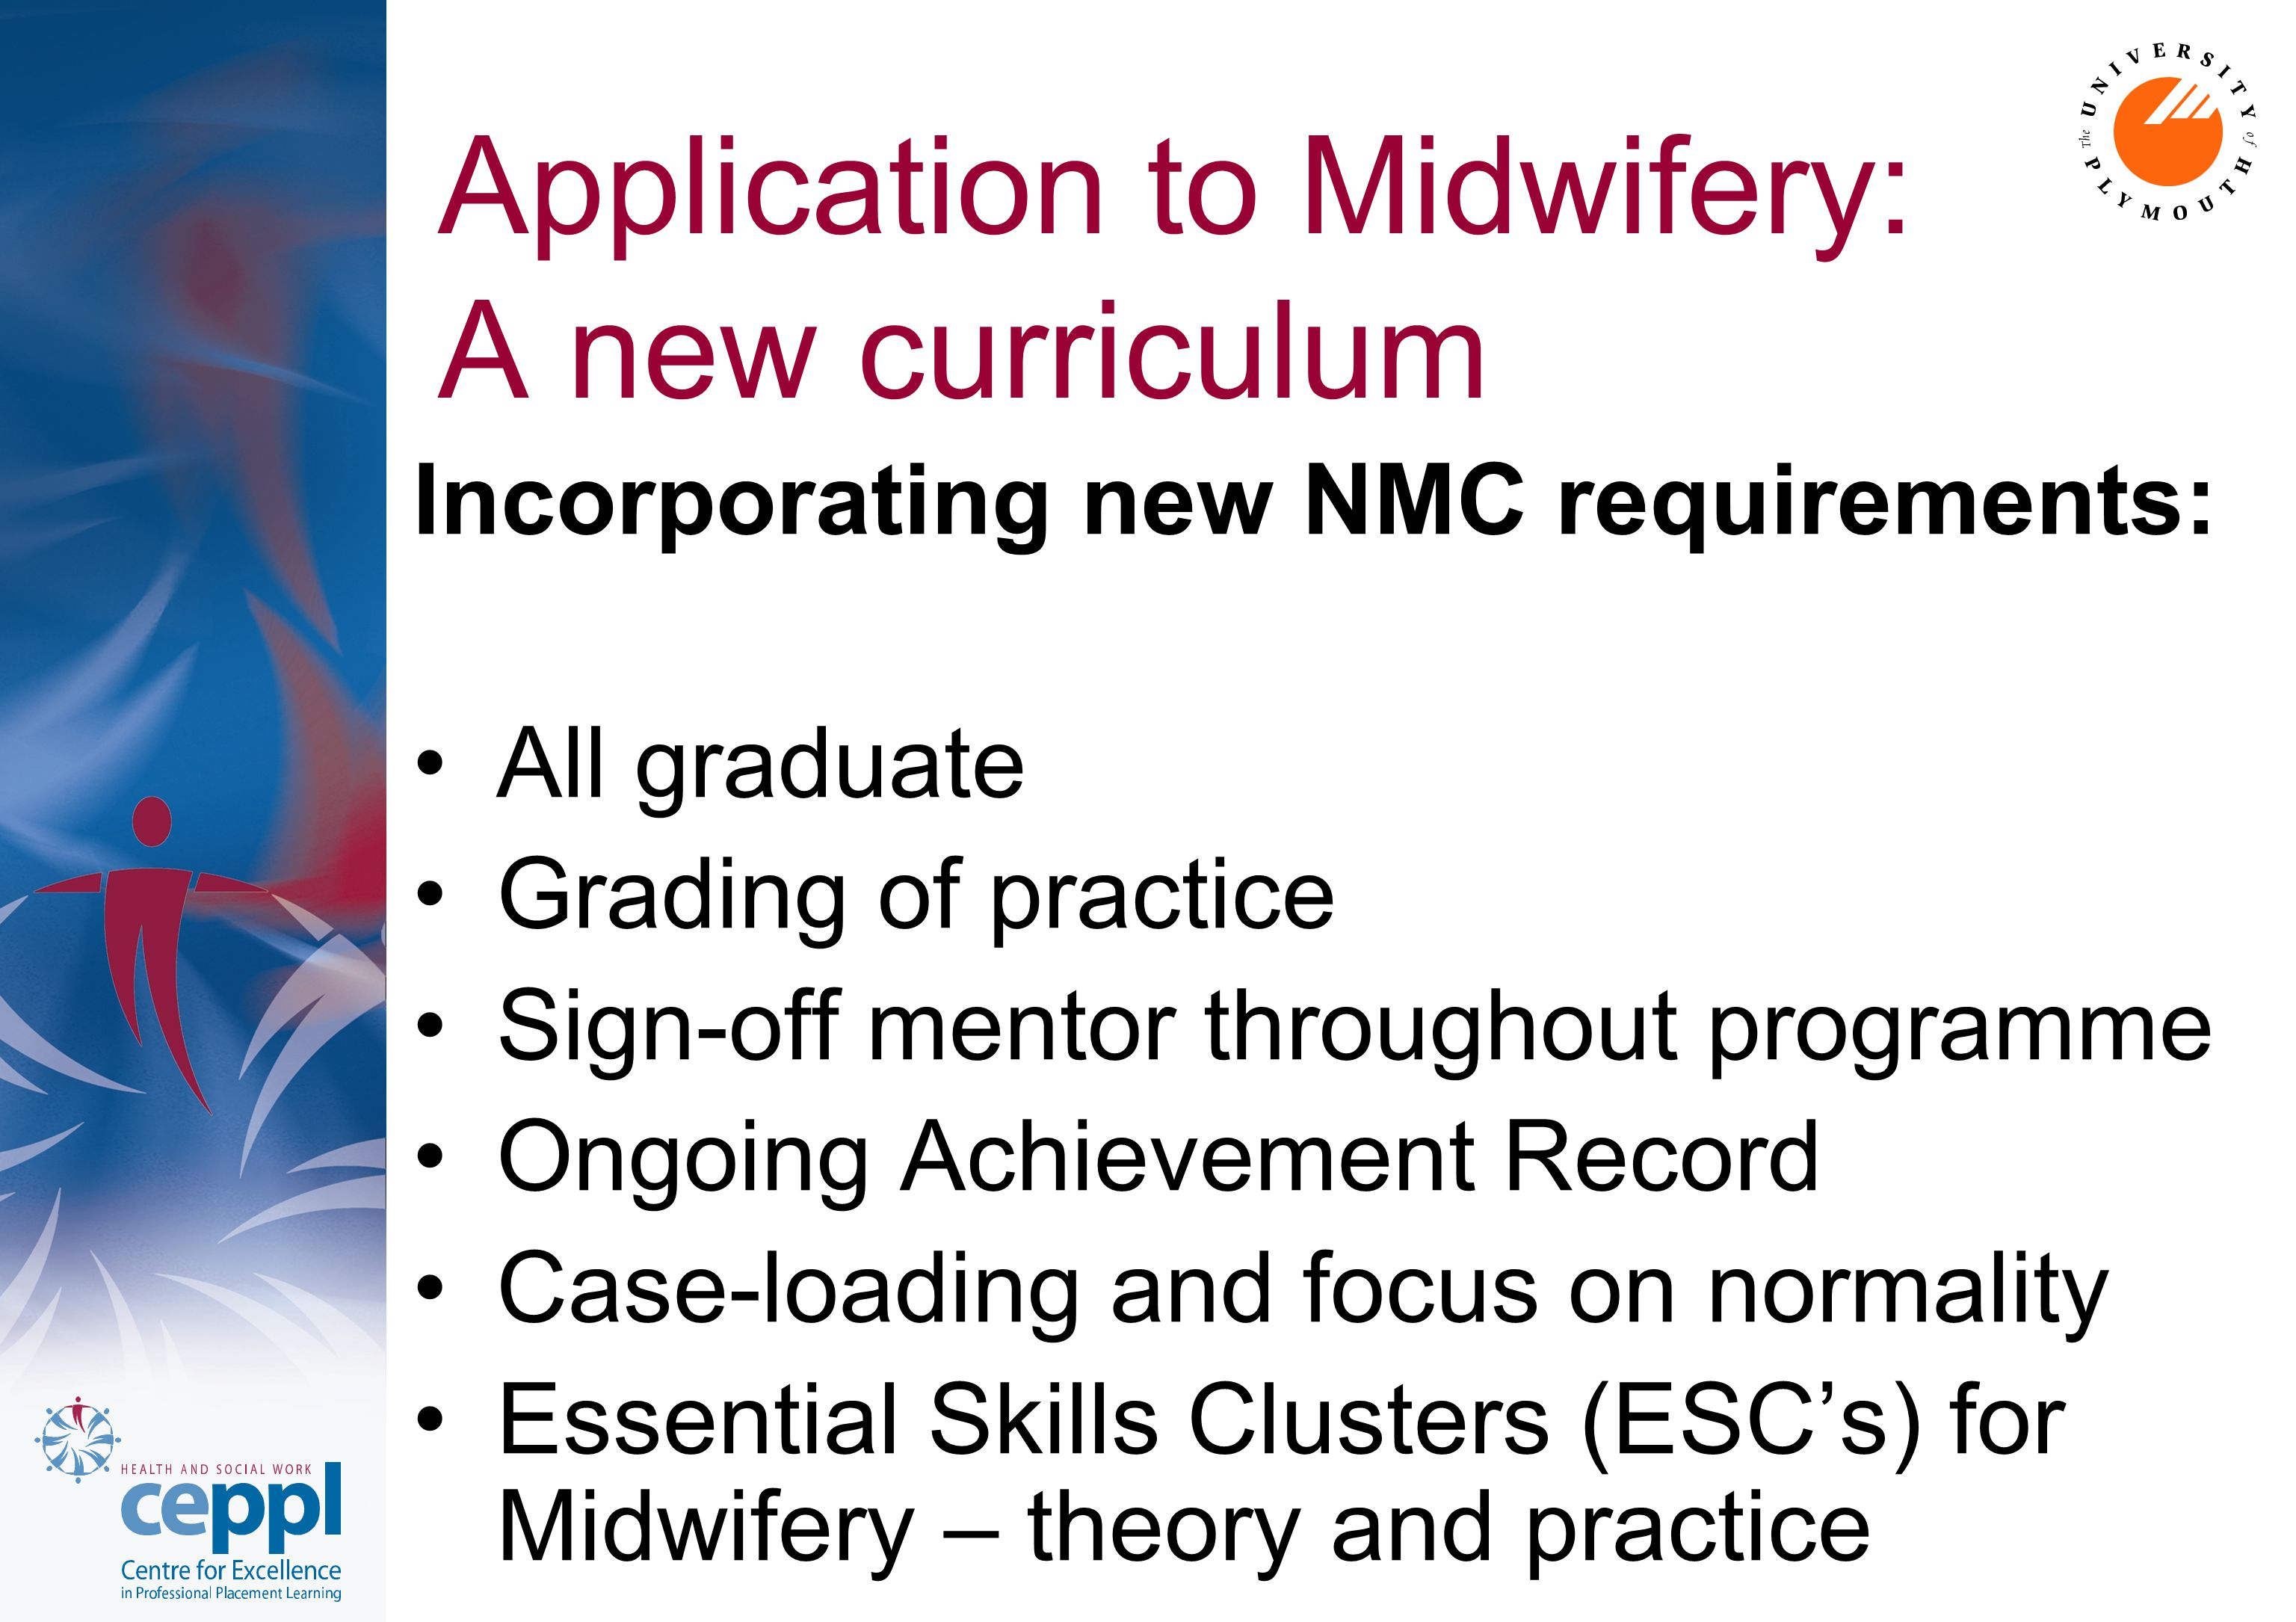 Application to Midwifery: A new curriculum Incorporating new NMC requirements: All graduate Grading of practice Sign-off mentor throughout programme Ongoing Achievement Record Case-loading and focus on normality Essential Skills Clusters (ESC's) for Midwifery – theory and practice